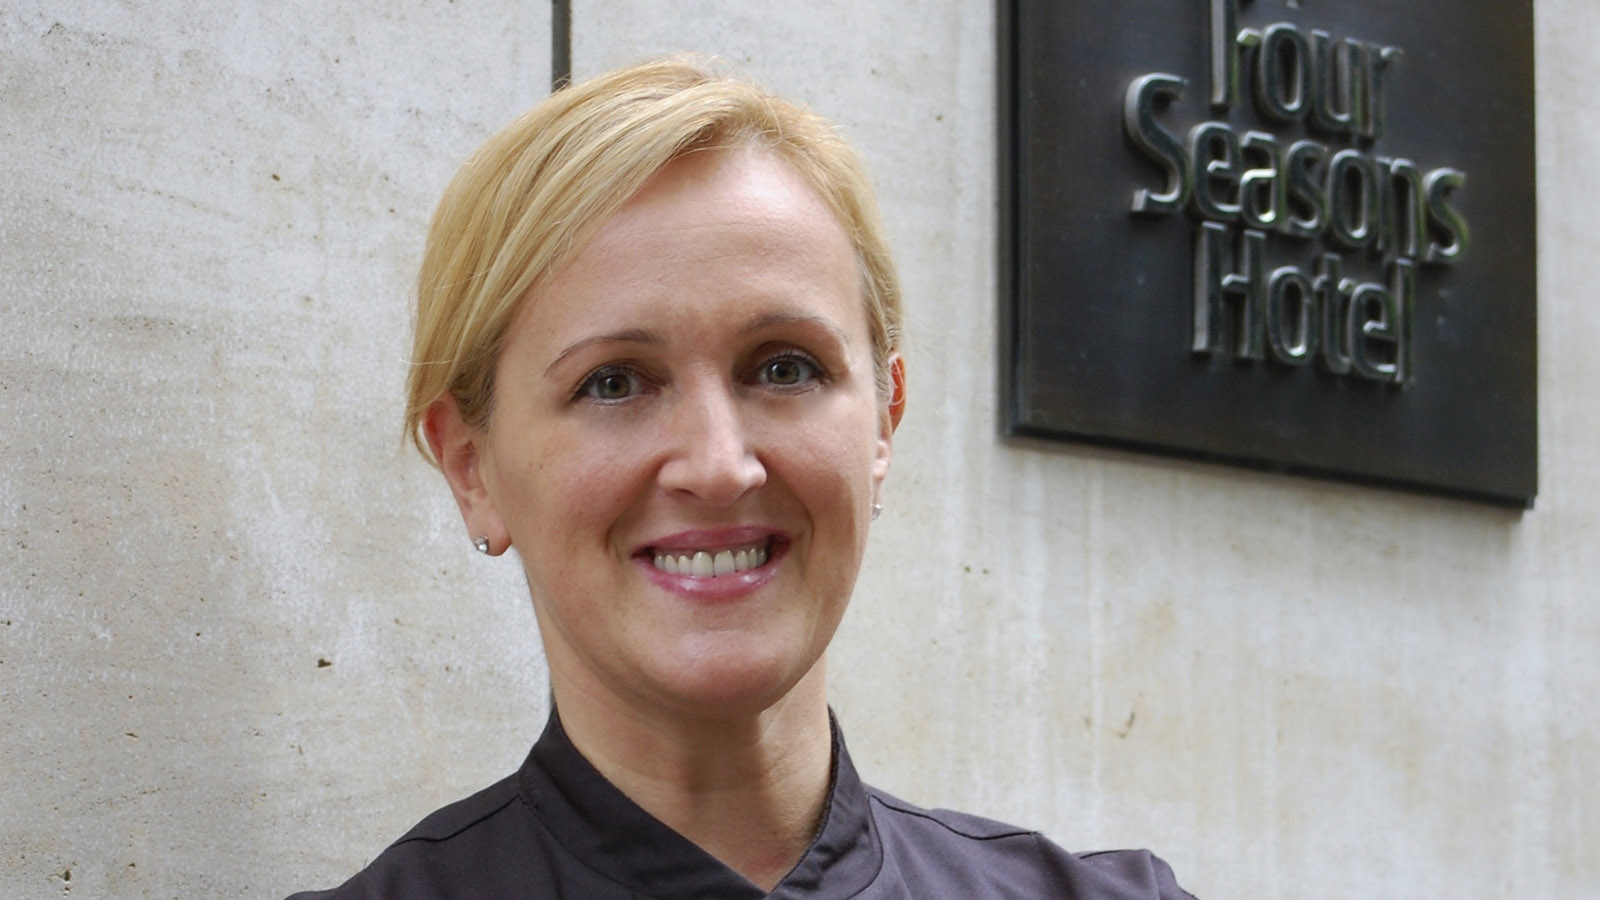 Executive Pastry Chef Jasmina Bojic at Four Seasons Hotel New York